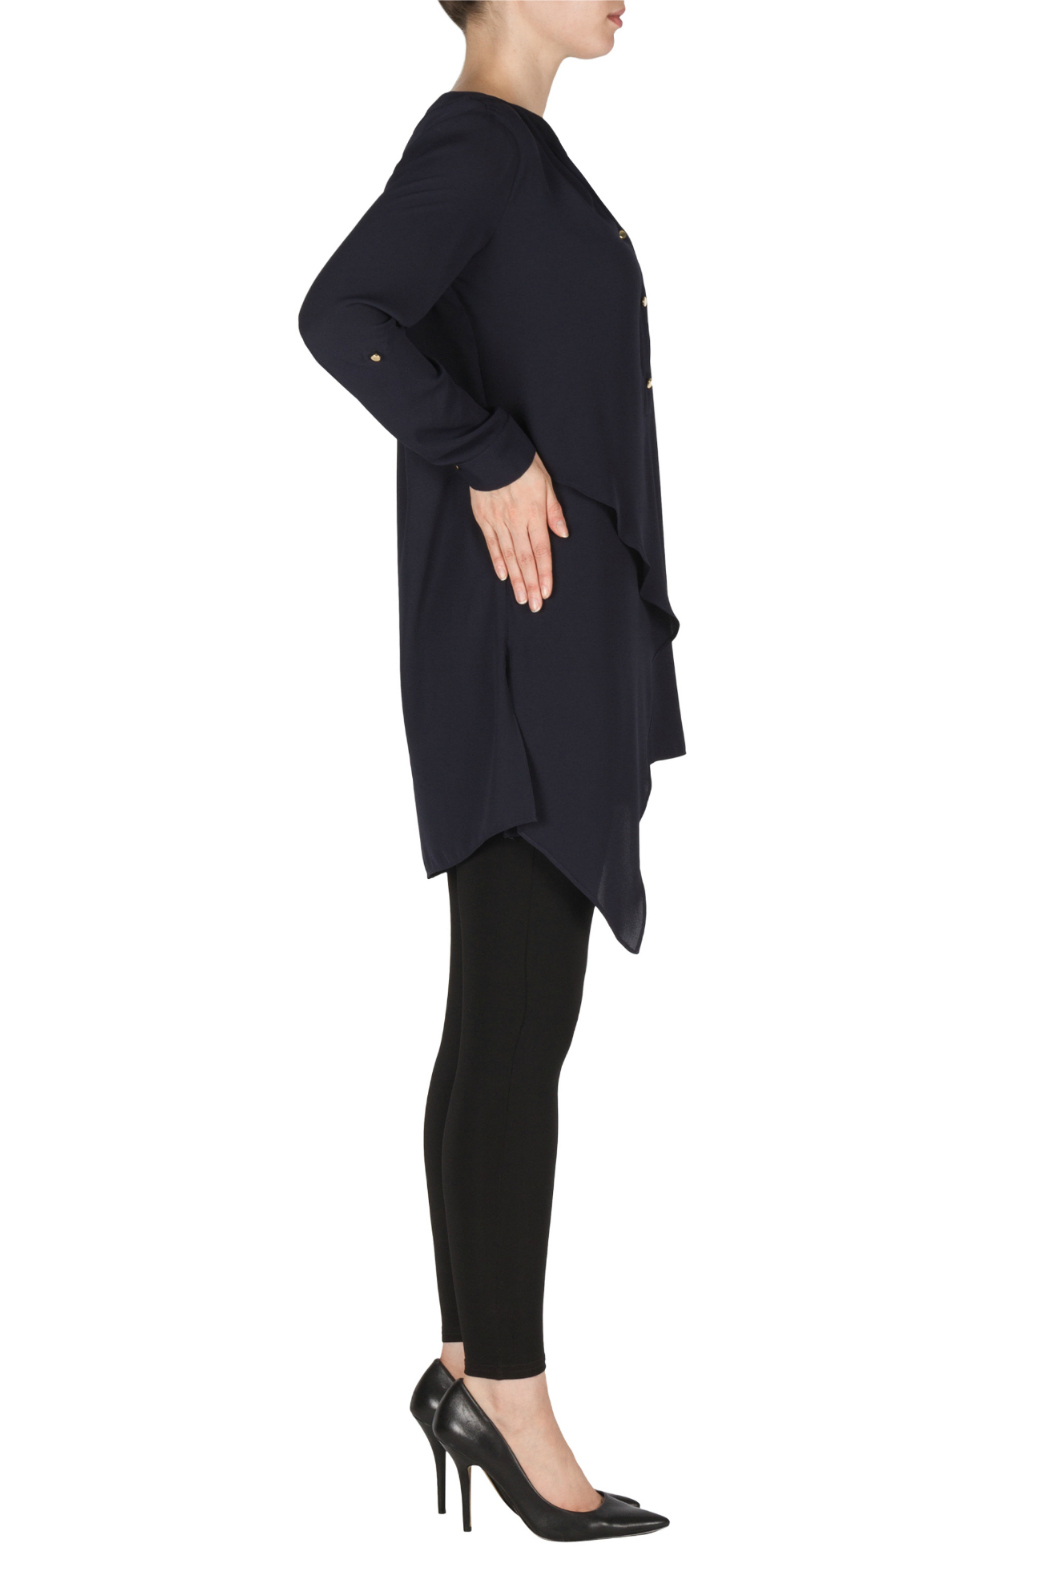 Joseph Ribkoff Navy Layered Tunic Blouse - Front Full Image